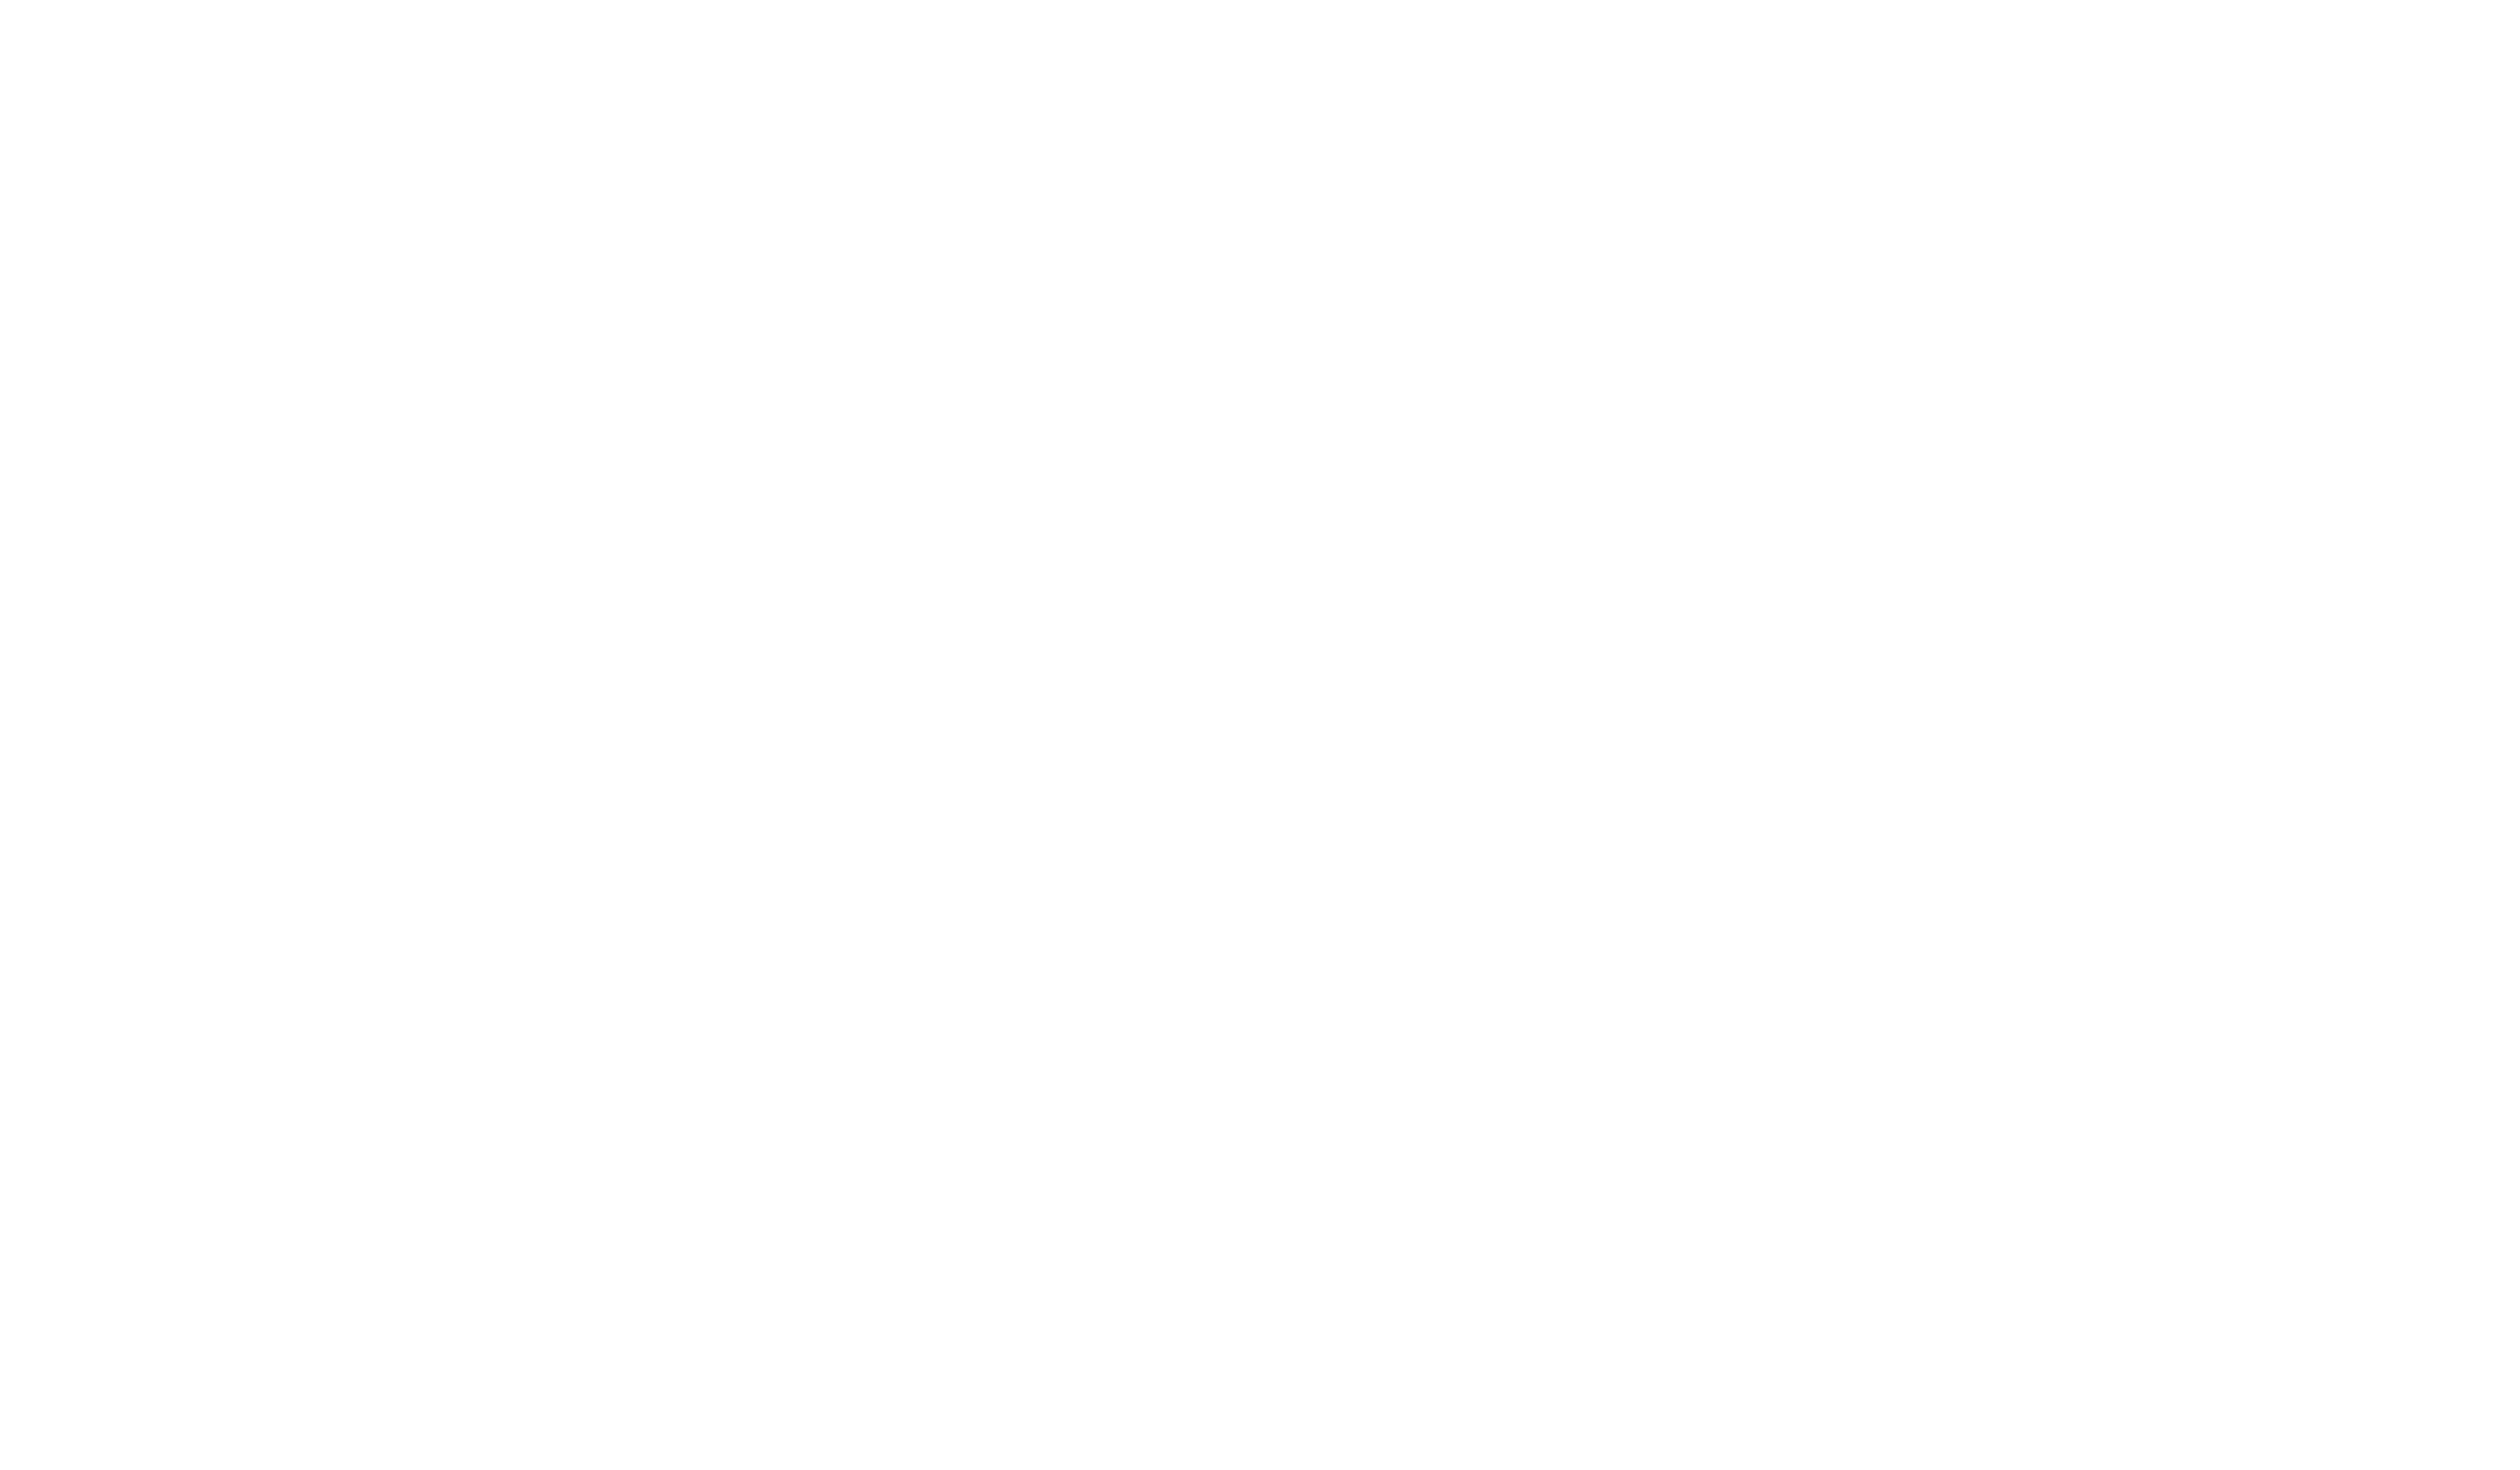 EUNOMIA GROUP